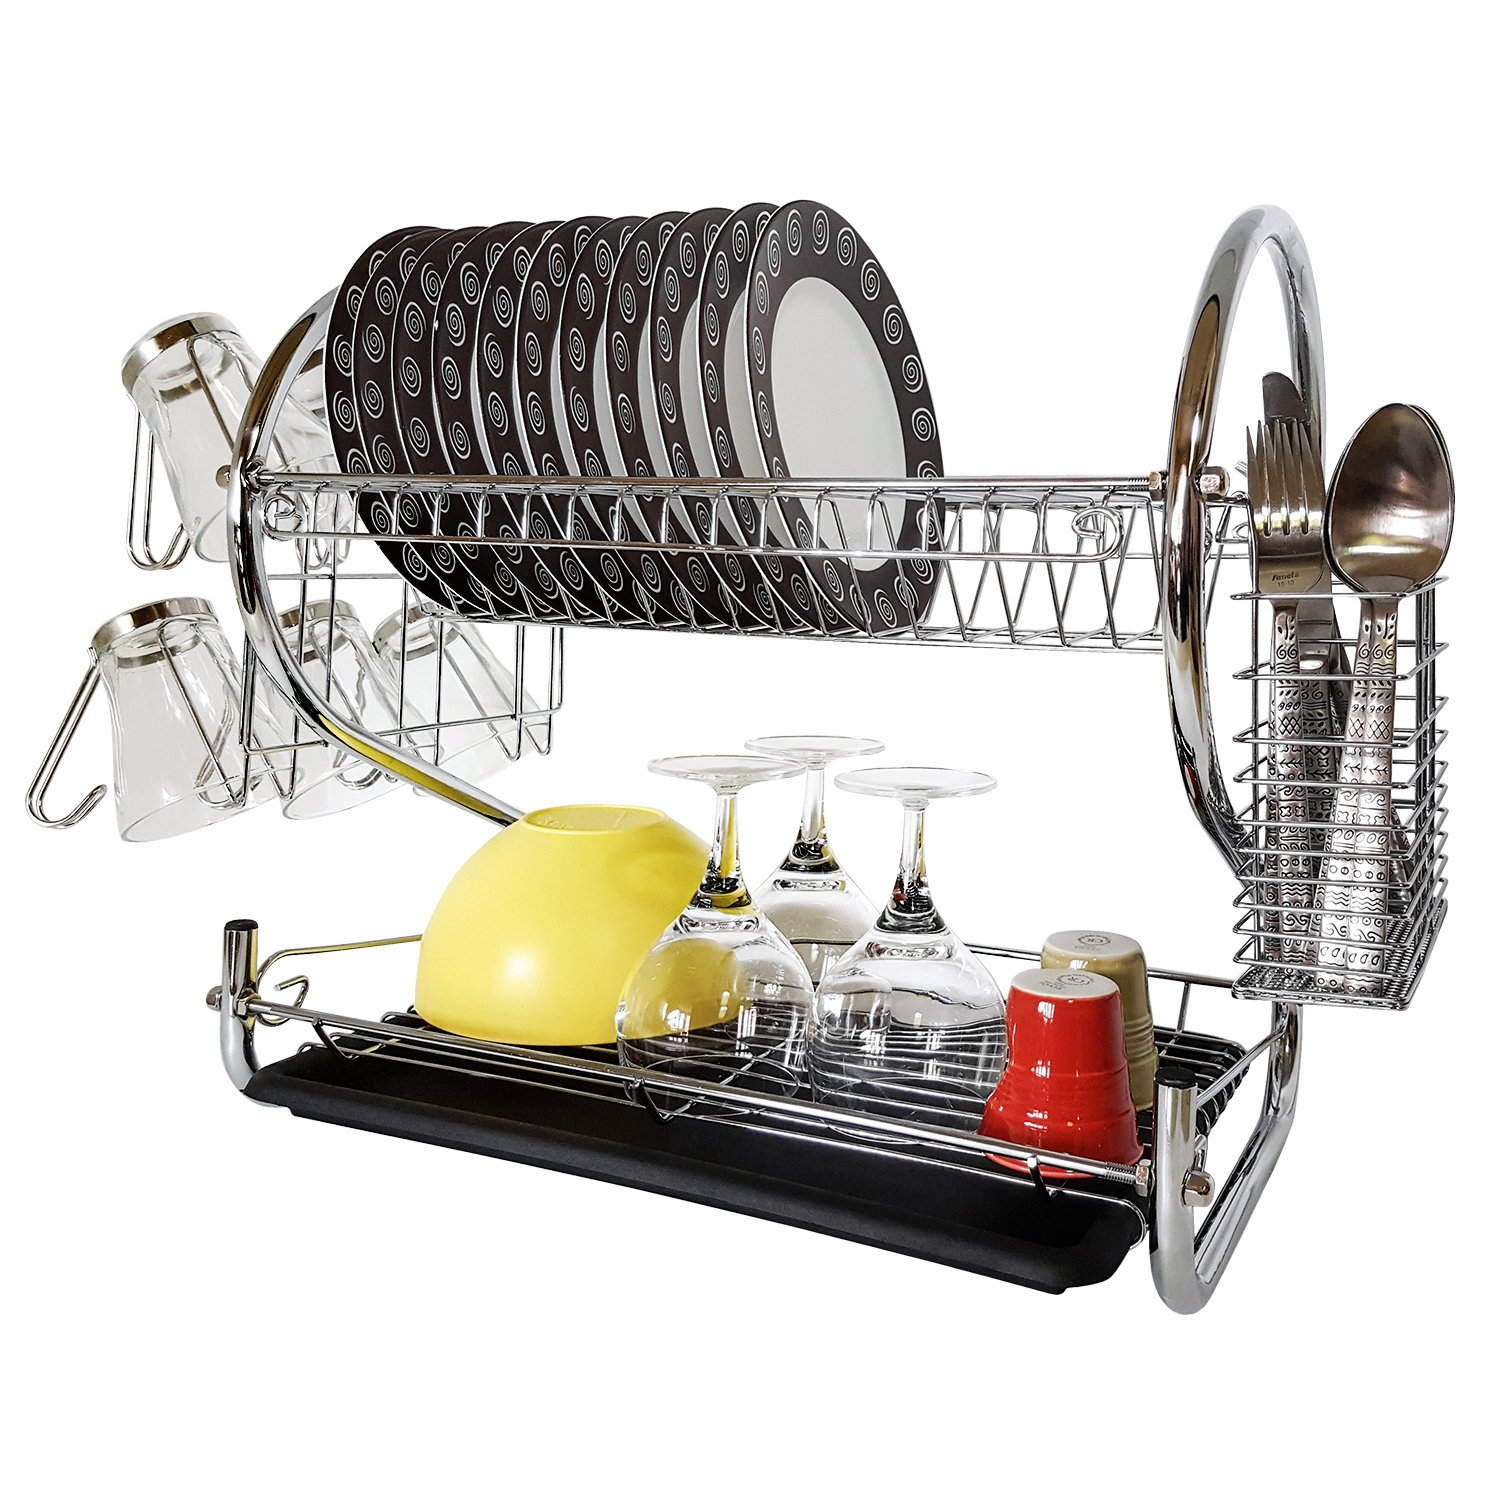 Tatkraft Helga Two Tier Chromed Dish Drainer with Mug Holder and Cutlery Drainer